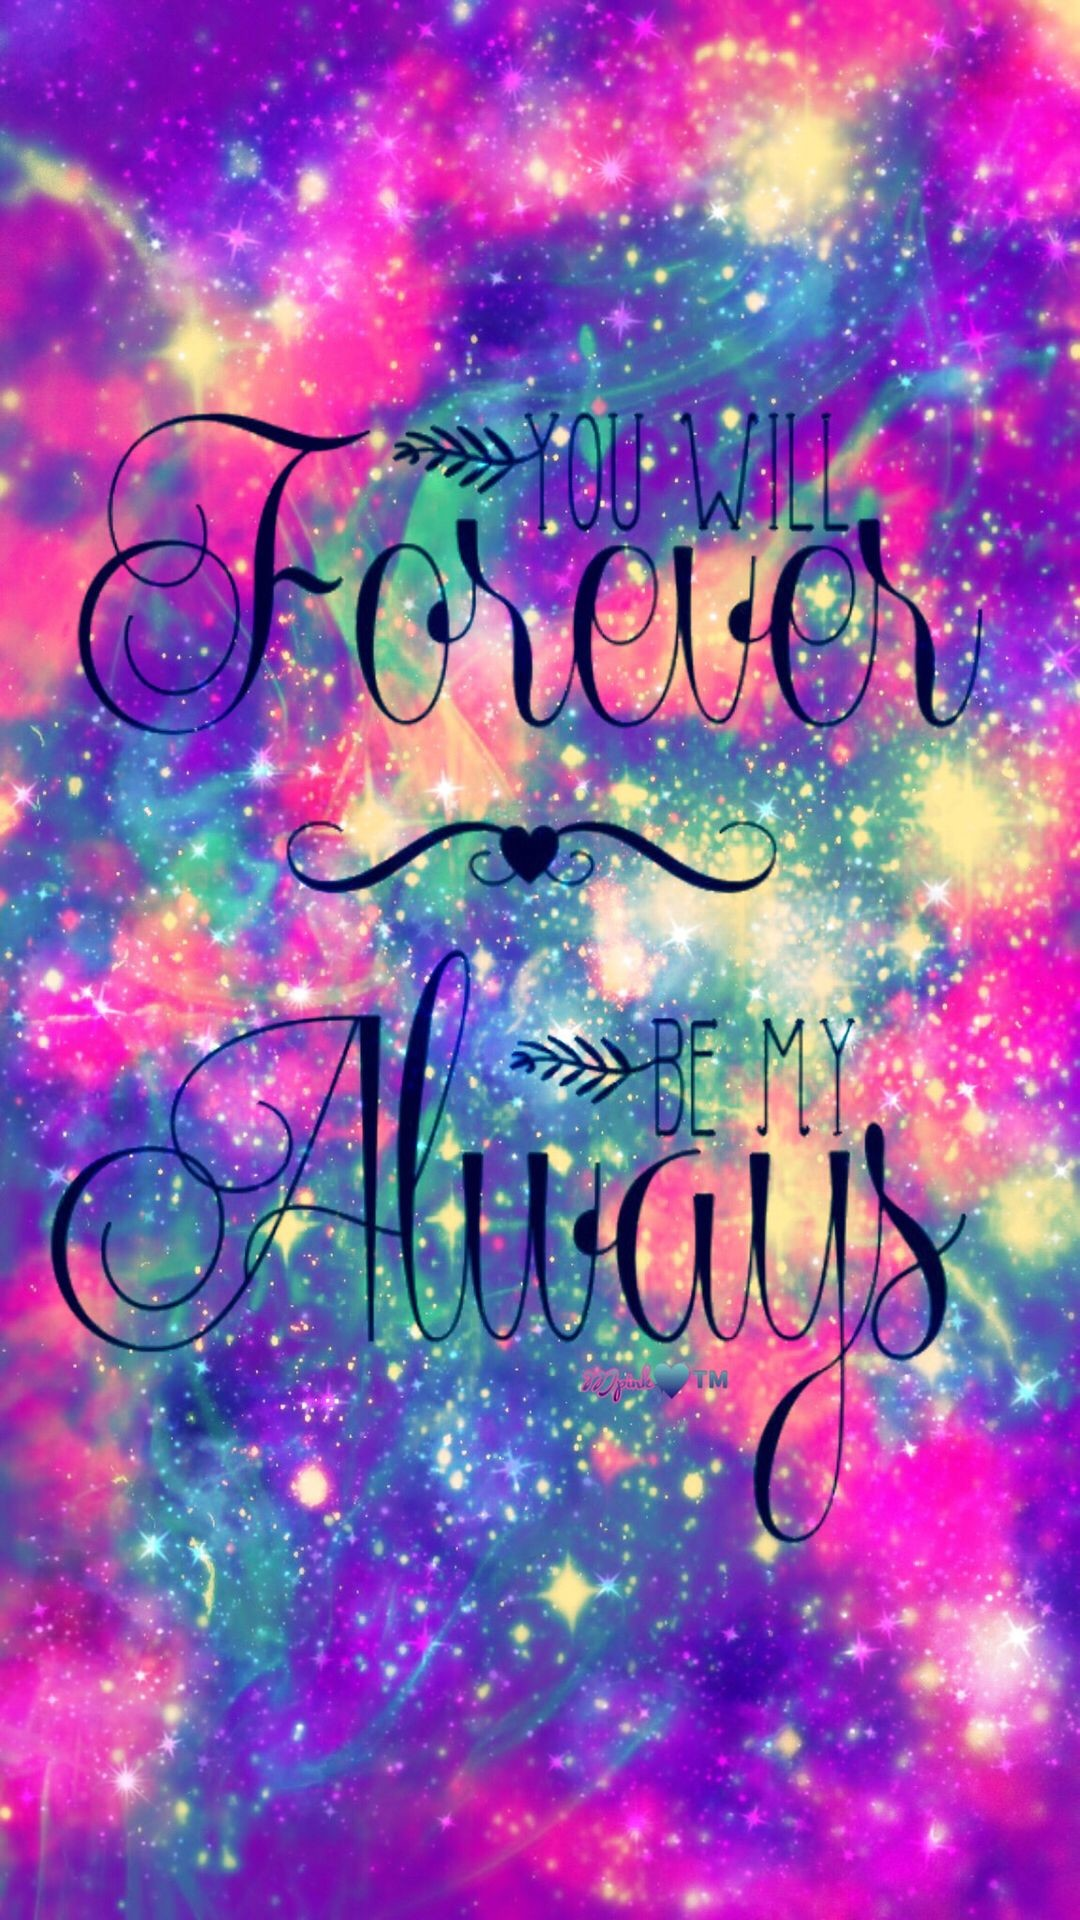 Res: 1080x1920, Forever & Always Galaxy Wallpaper #androidwallpaper #iphonewallpaper # wallpaper #galaxy #sparkle #